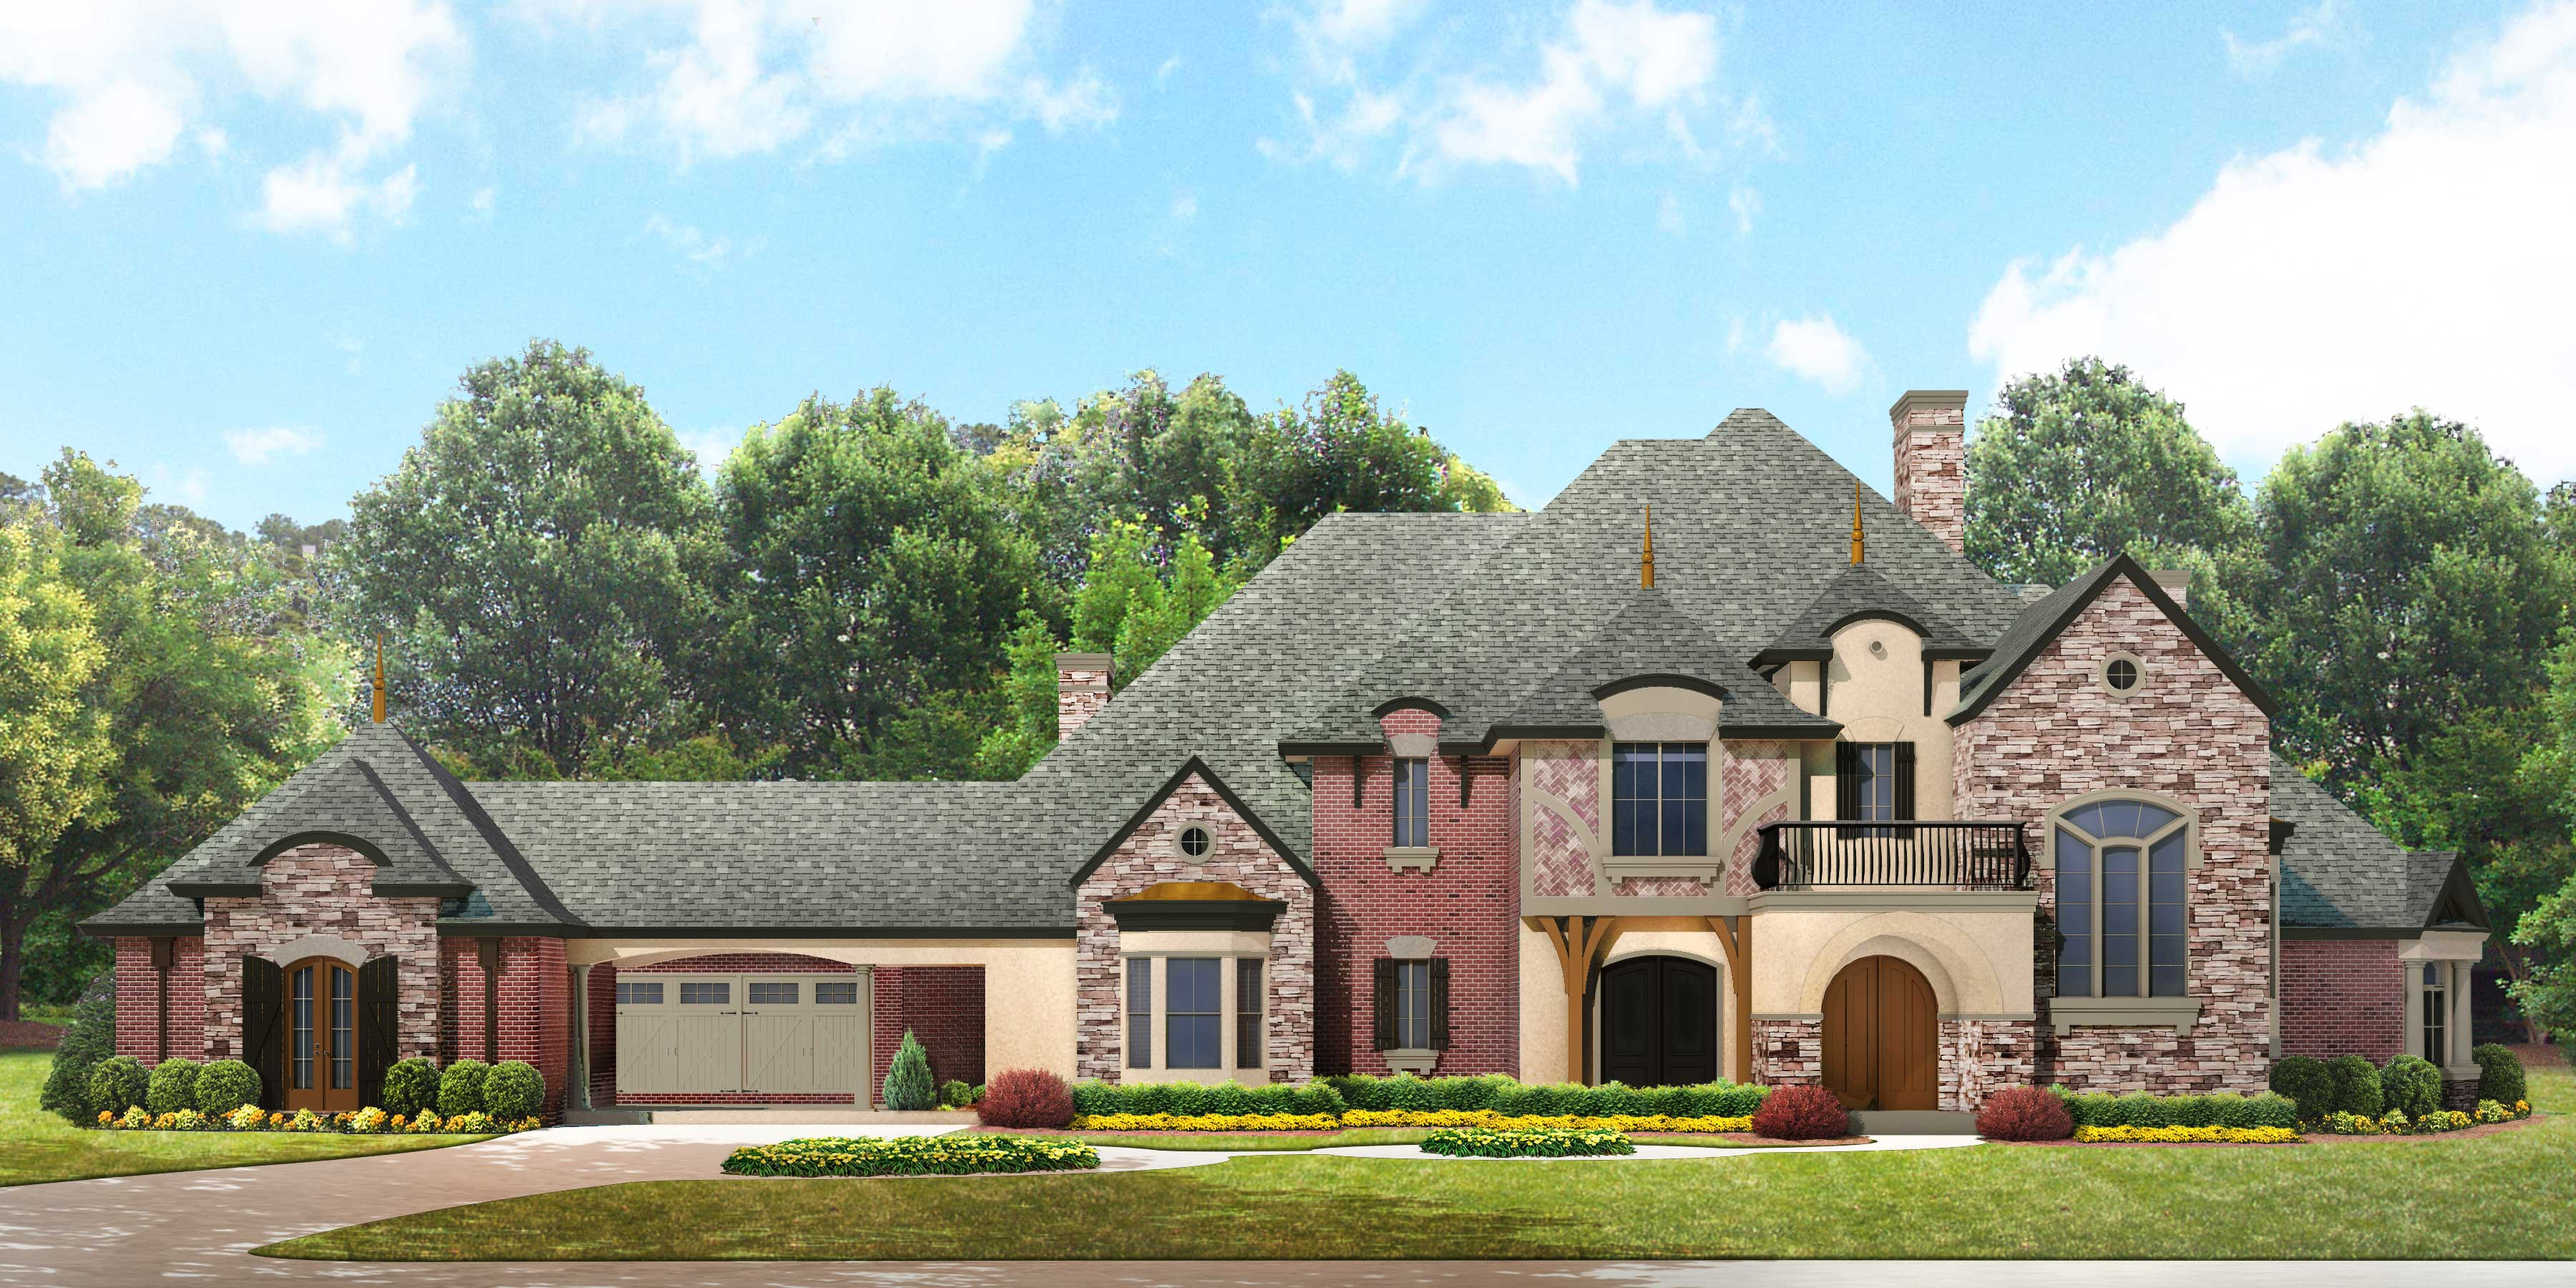 European manor house plan 134 1350 4 bedrm 5303 sq ft for Mansion plan